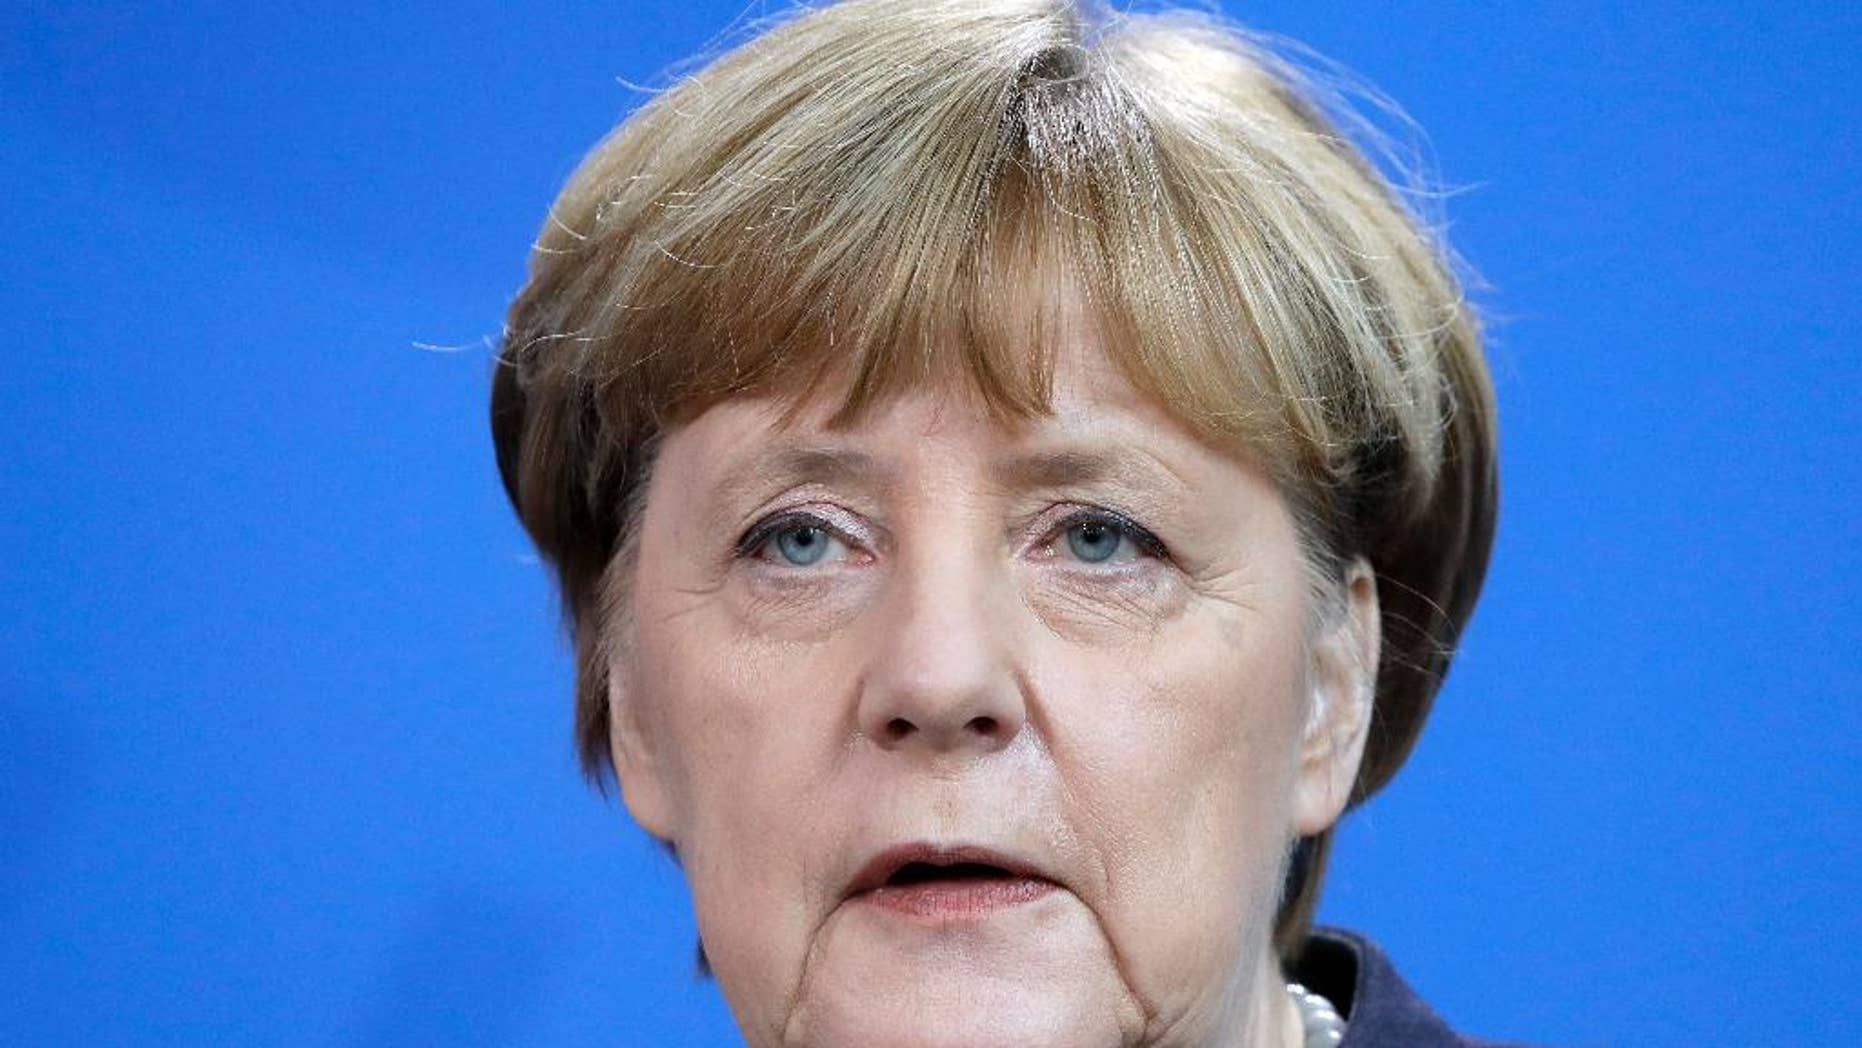 German Chancellor Angela Merkel speaks during a joint news conference as part of a meeting with the Prime Minister of New Zealand Bill English, at the chancellery in Berlin, Germany, Monday, Jan. 16, 2017. (AP Photo/Michael Sohn)